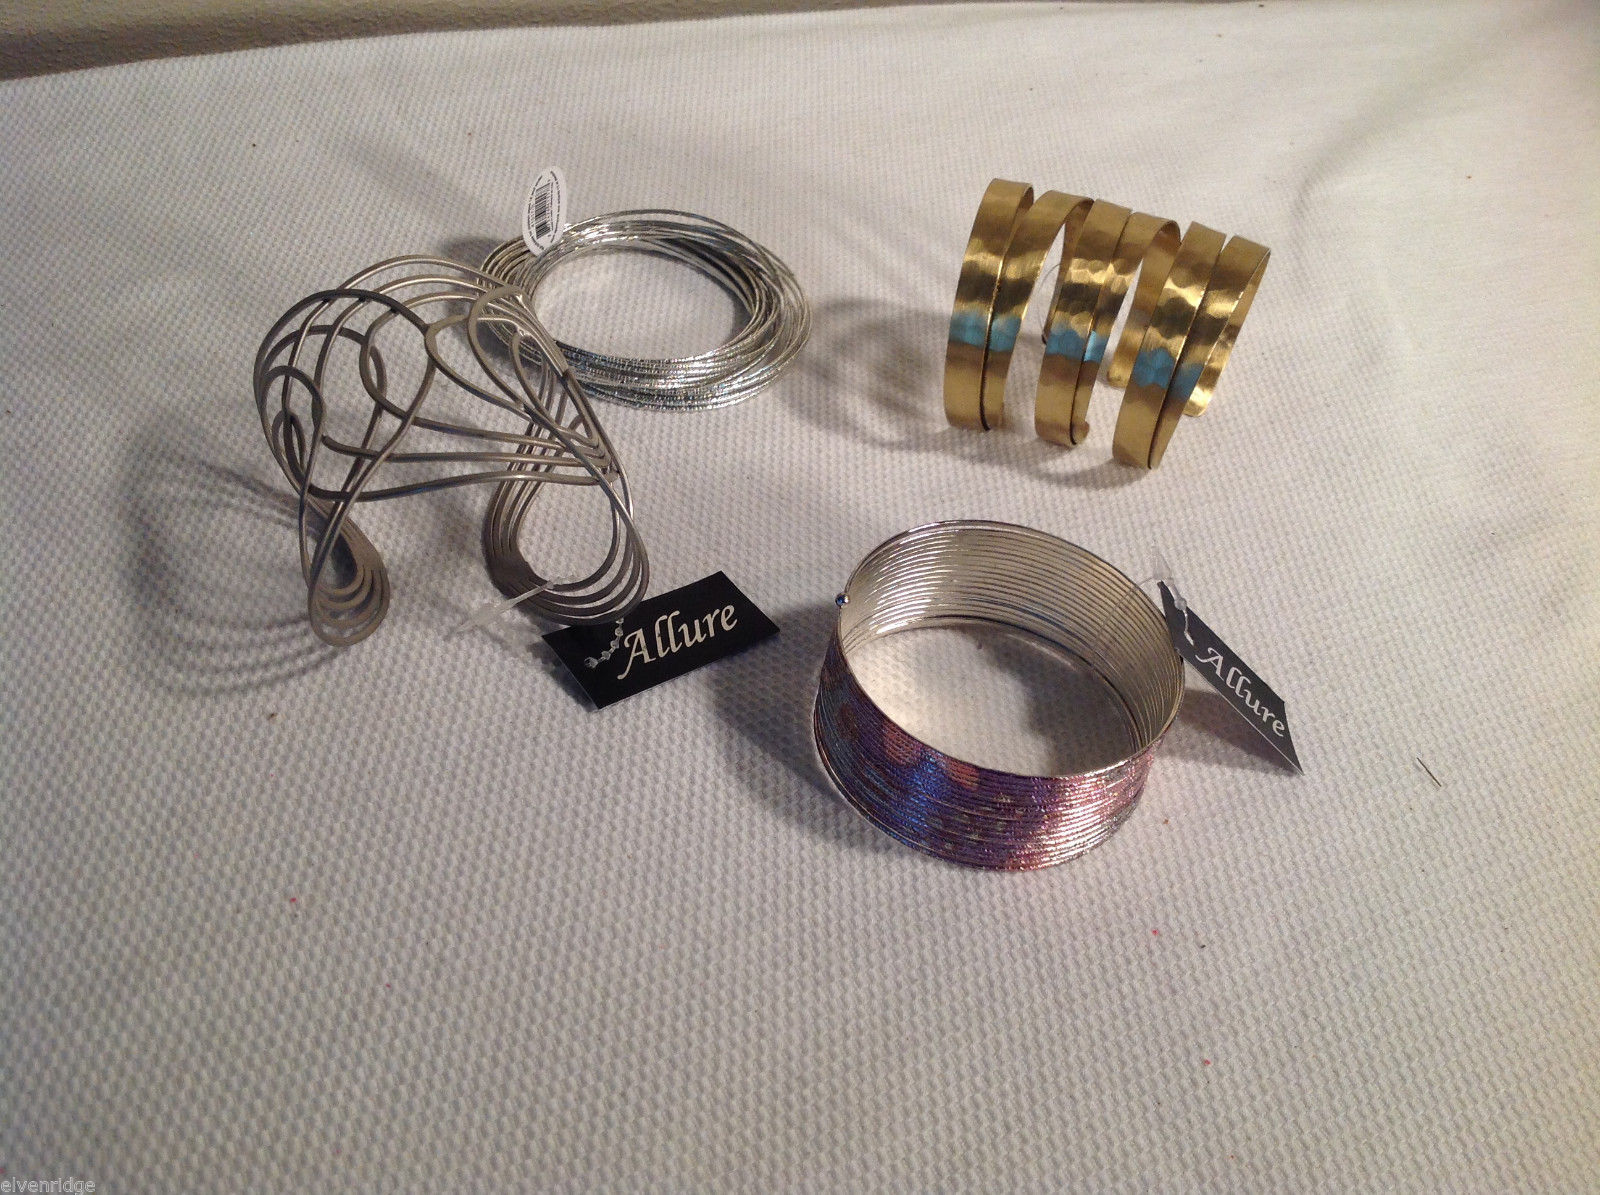 Lot of 4 bracelets, slinky type, open clasp, interlinked silver tone gold tone